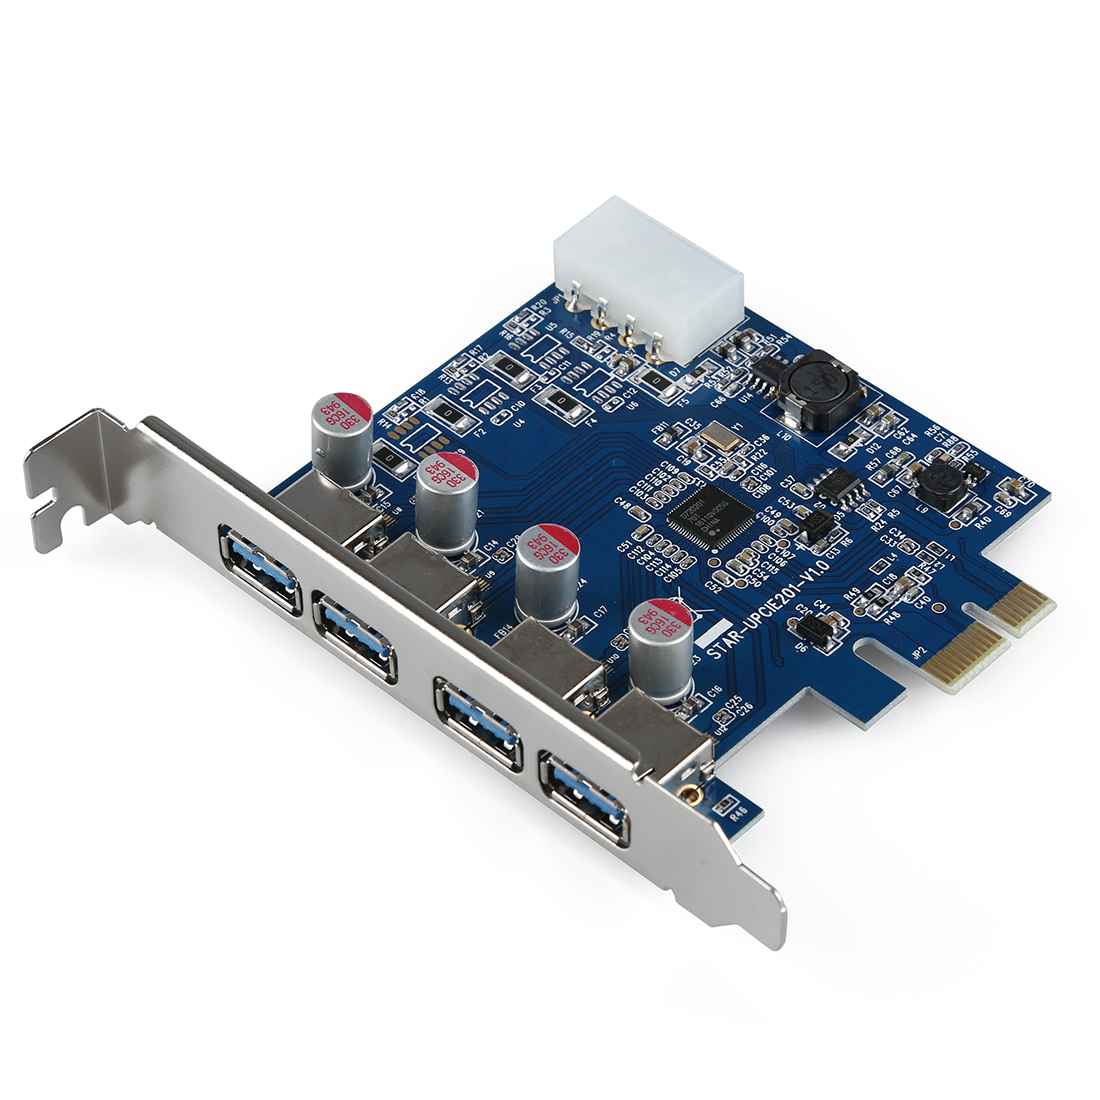 4-Port SuperSpeed USB 3.0 PCI-E PCI Express Card avec 4-pin IDE Connecteur D'alimentation NEC uPD720201